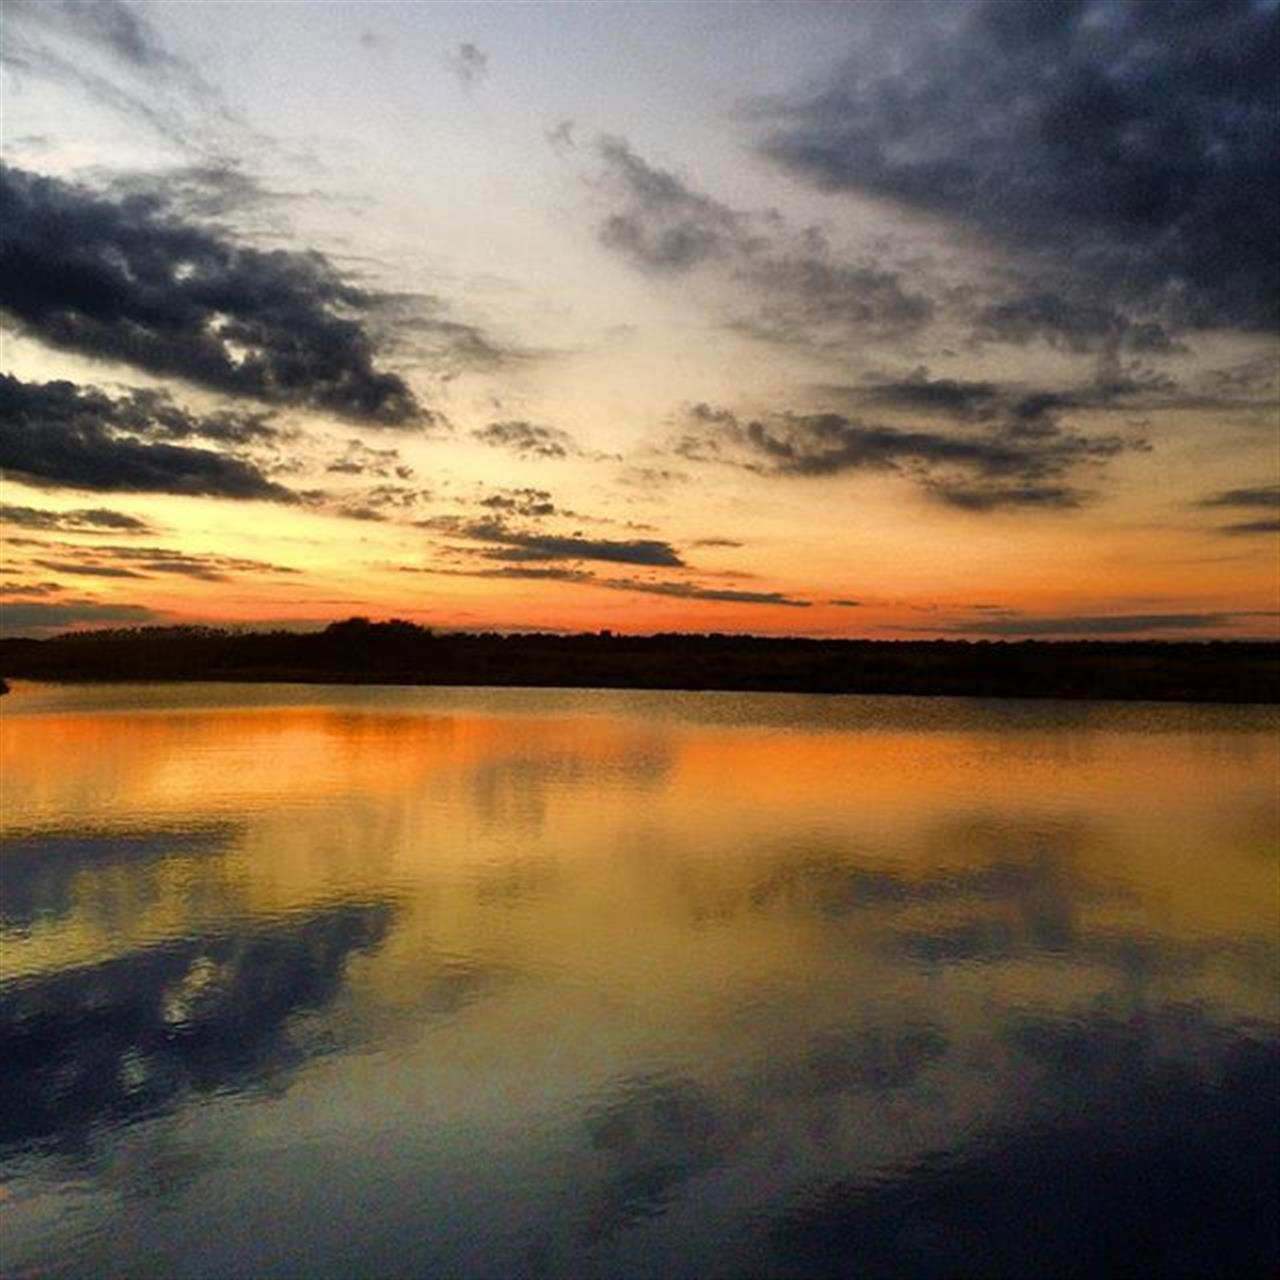 Giving thanks day #perfect #memories #reflections #leadingRE #magic #lovelife #possiblities #hope #imagine #intentions #peace #possiblities #dream #wisdom #photography #sunset #memories #compassion #goodnight